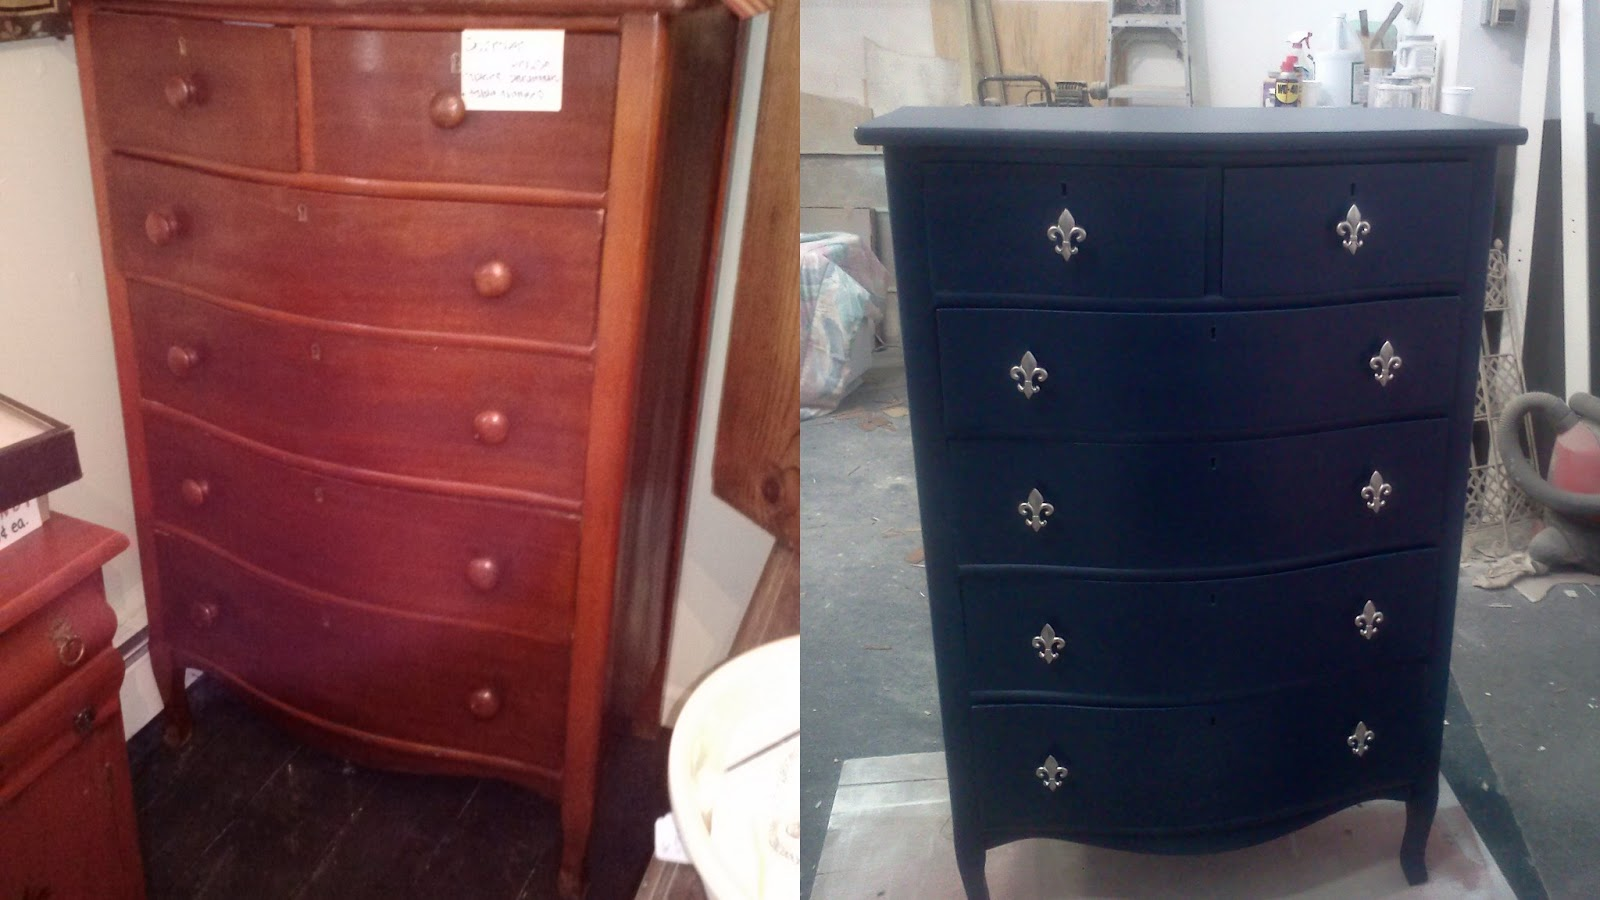 vintage dresser painted navy blue and wood knobs replaced with silver fleur de lis blue shabby chic furniture